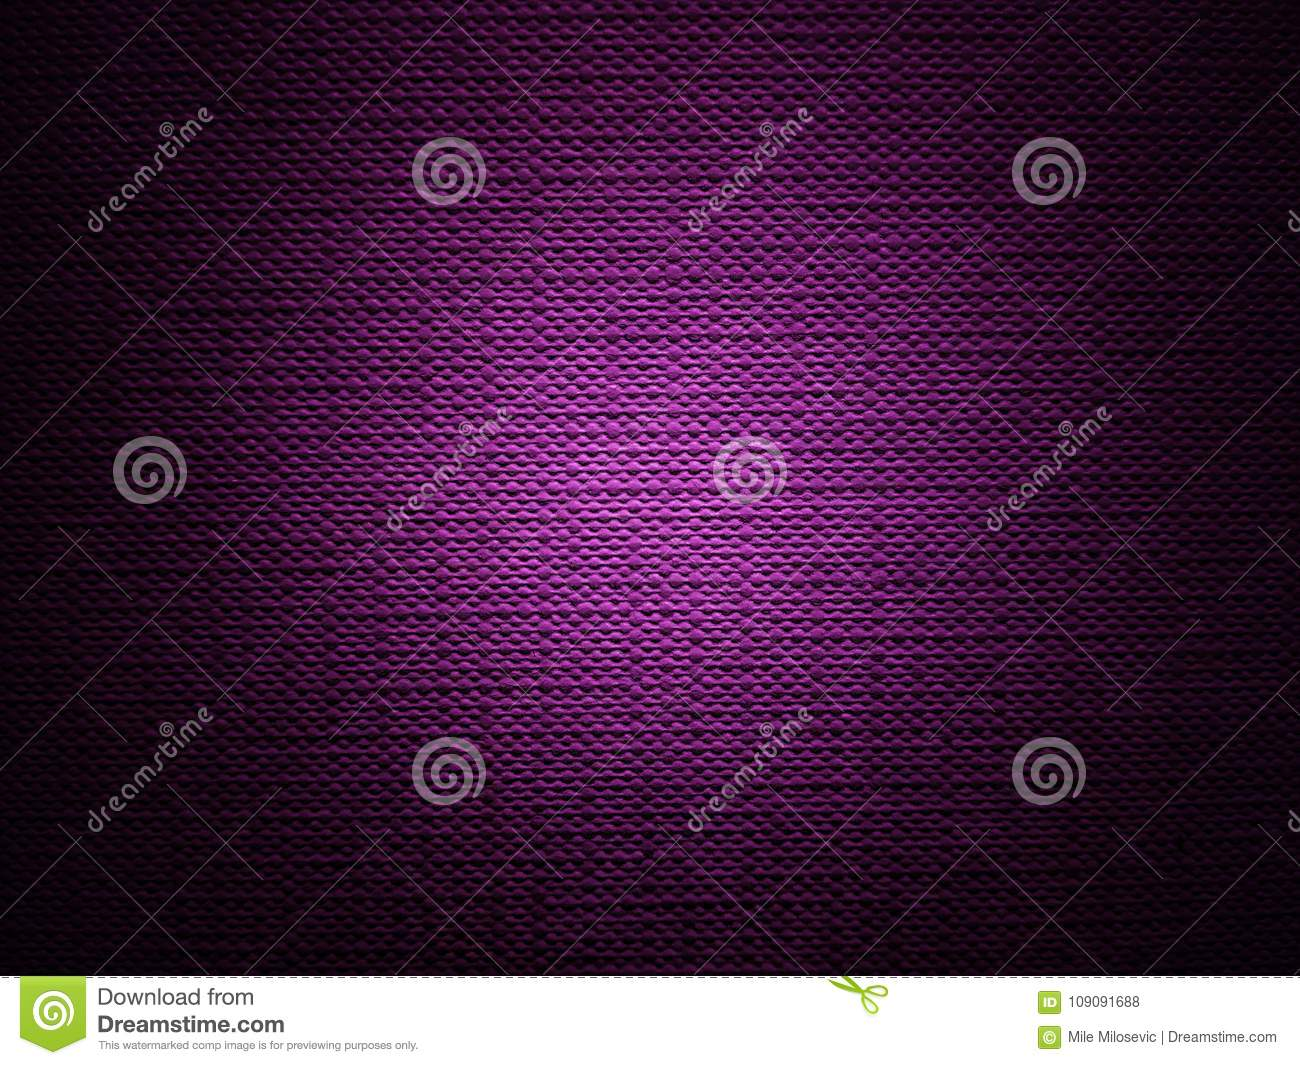 Abstract purple and black background paper texture